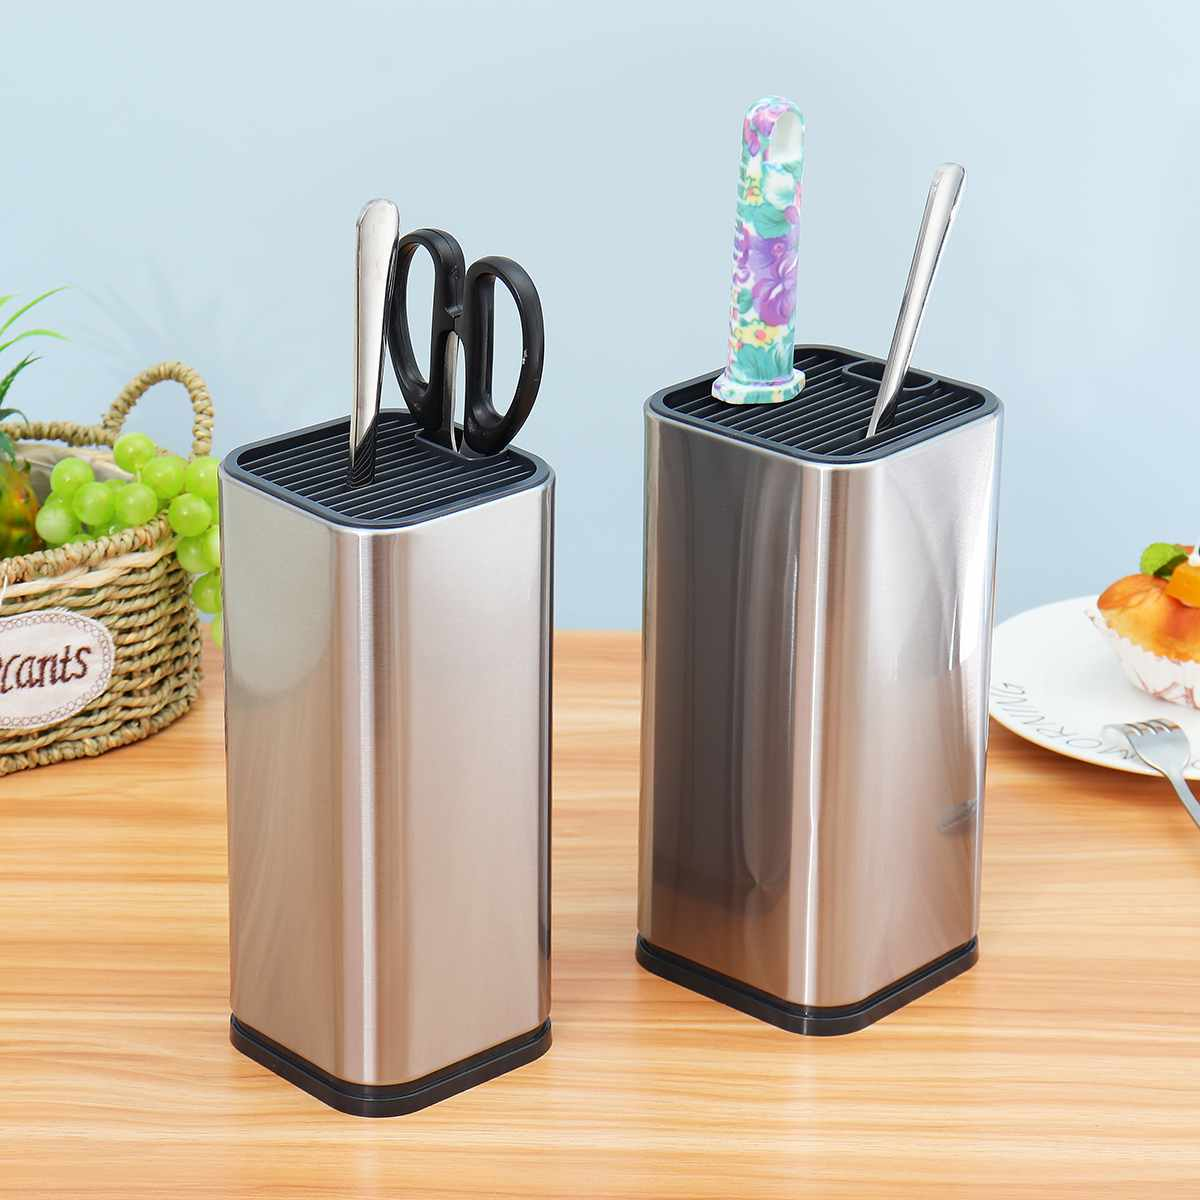 Stainless Steel Kitchen Knife Stand Tool Holder Multifunctional Kitchen Tool Holder Knife Block Sooktops Tube Shelf 2 Size